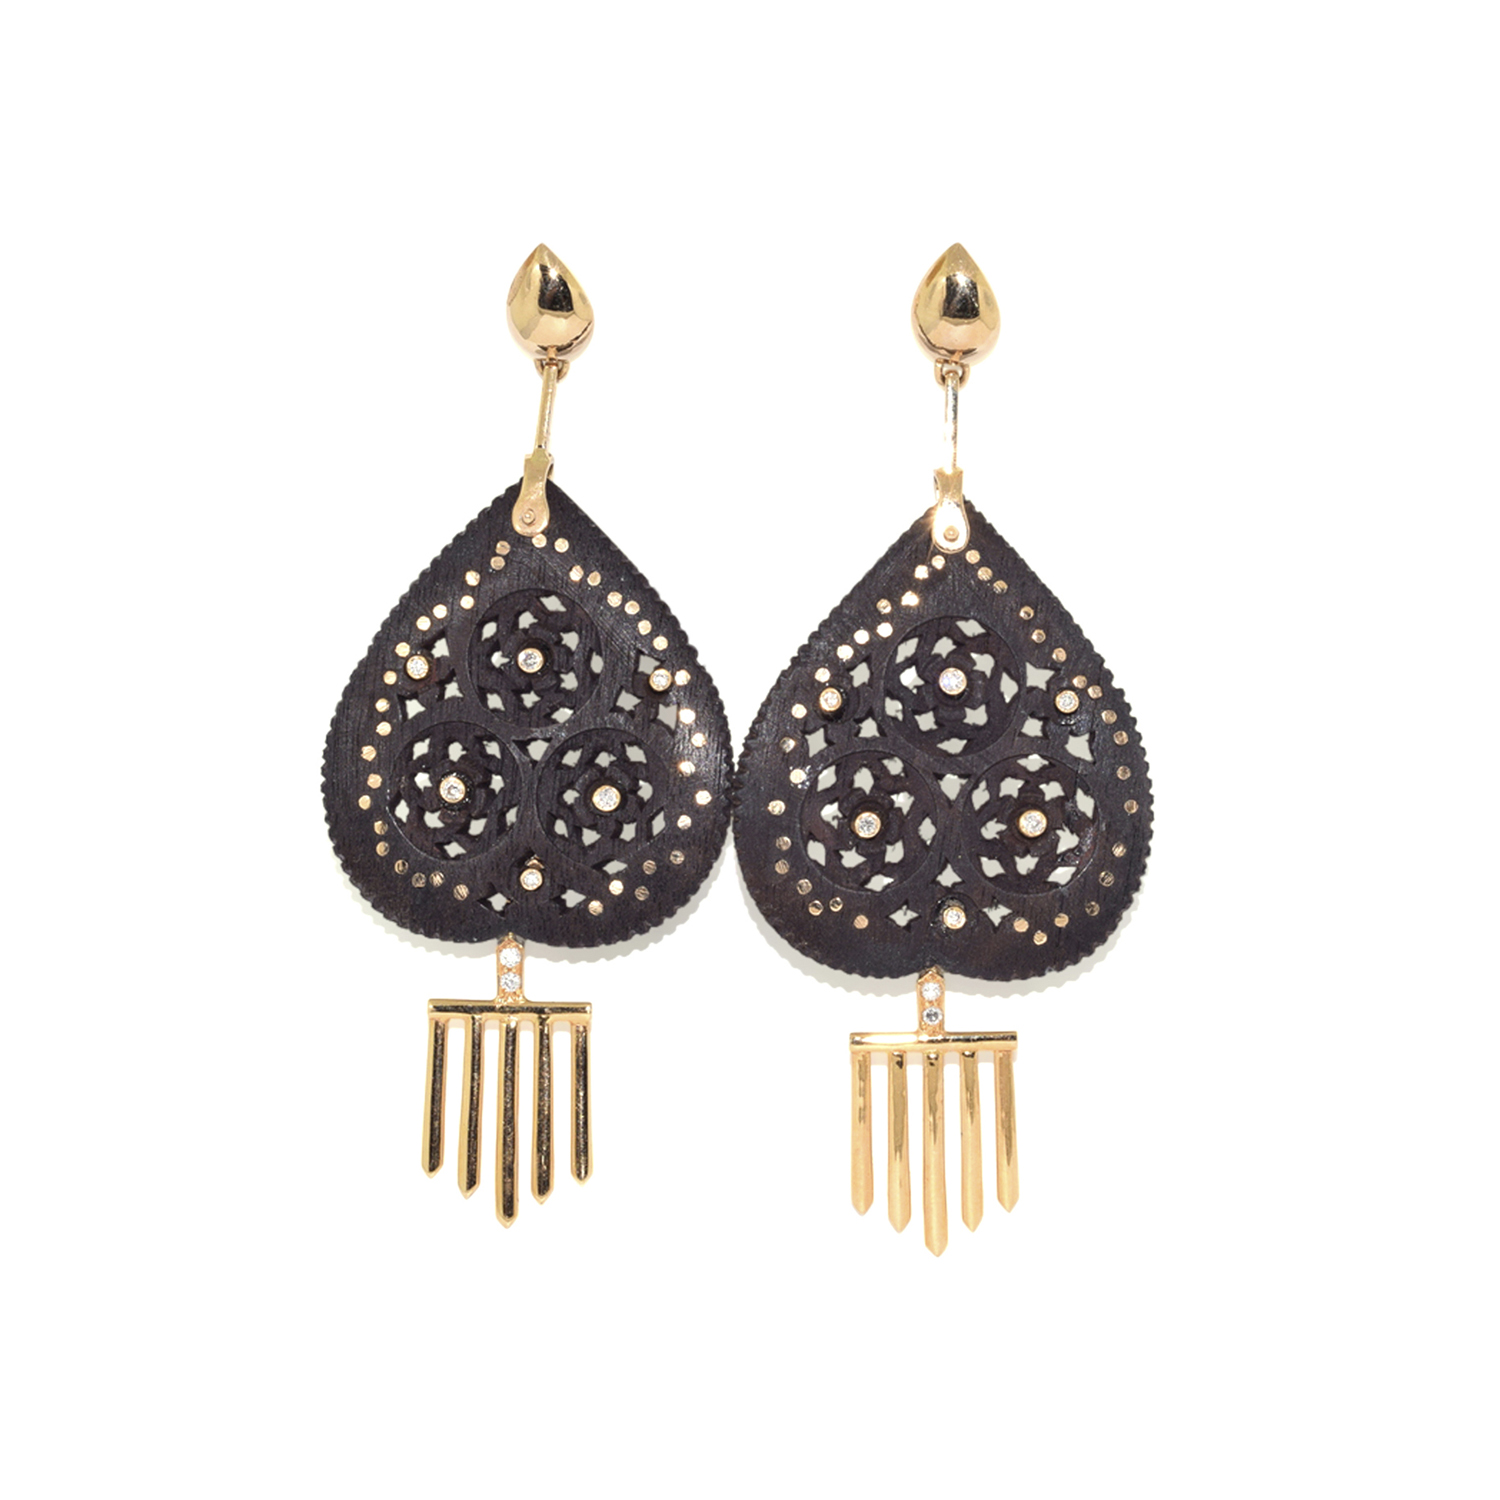 18K Yellow Gold, Ebony Wood and Diamond Pendant Earrings by Hanut Singh, Serial FL39435